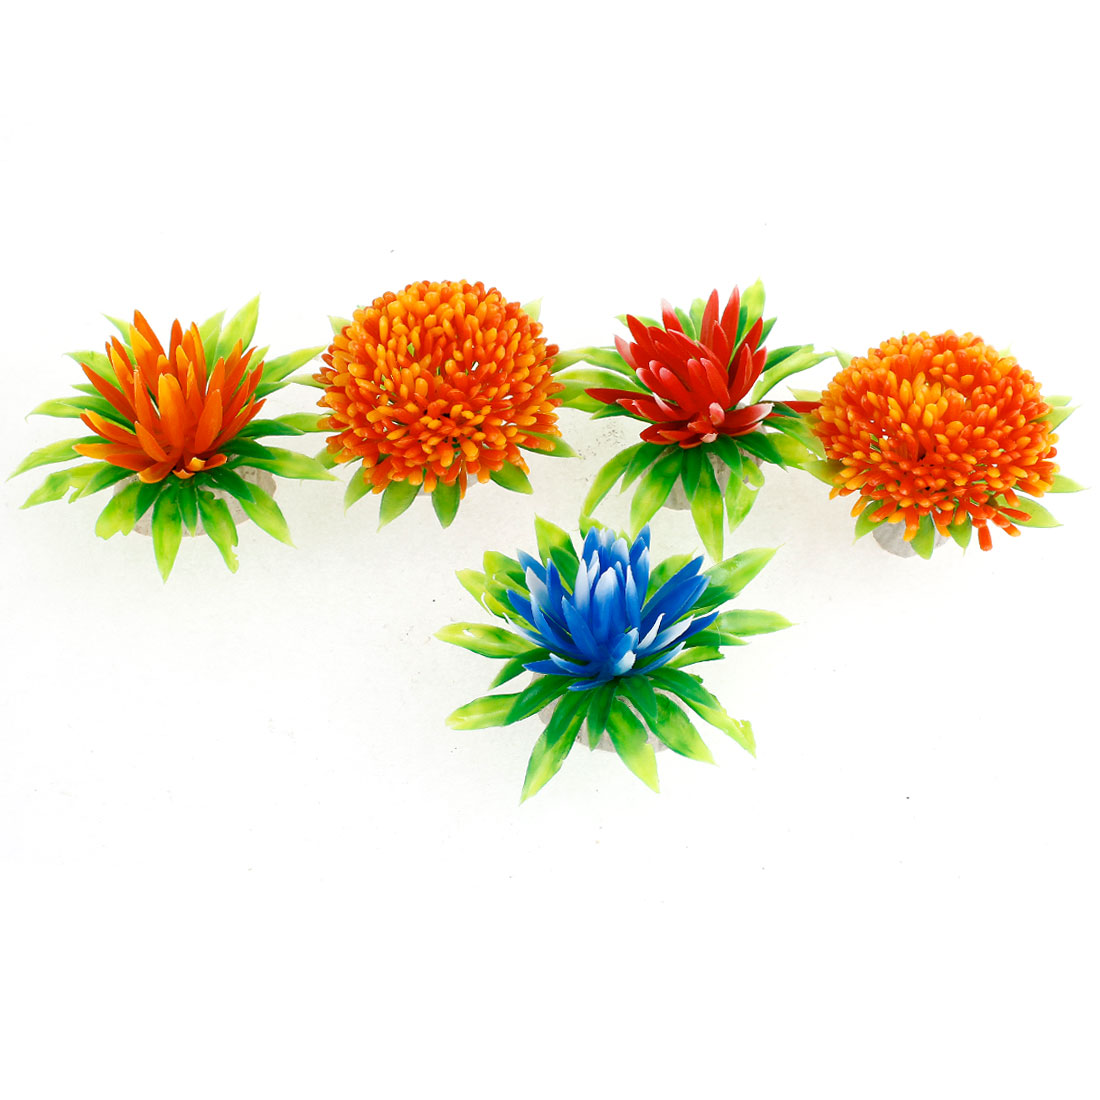 Unique Bargains Ceramic Base Flower Style Artificial Underwater Plants 5 Pcs for Aquarium - image 1 de 1